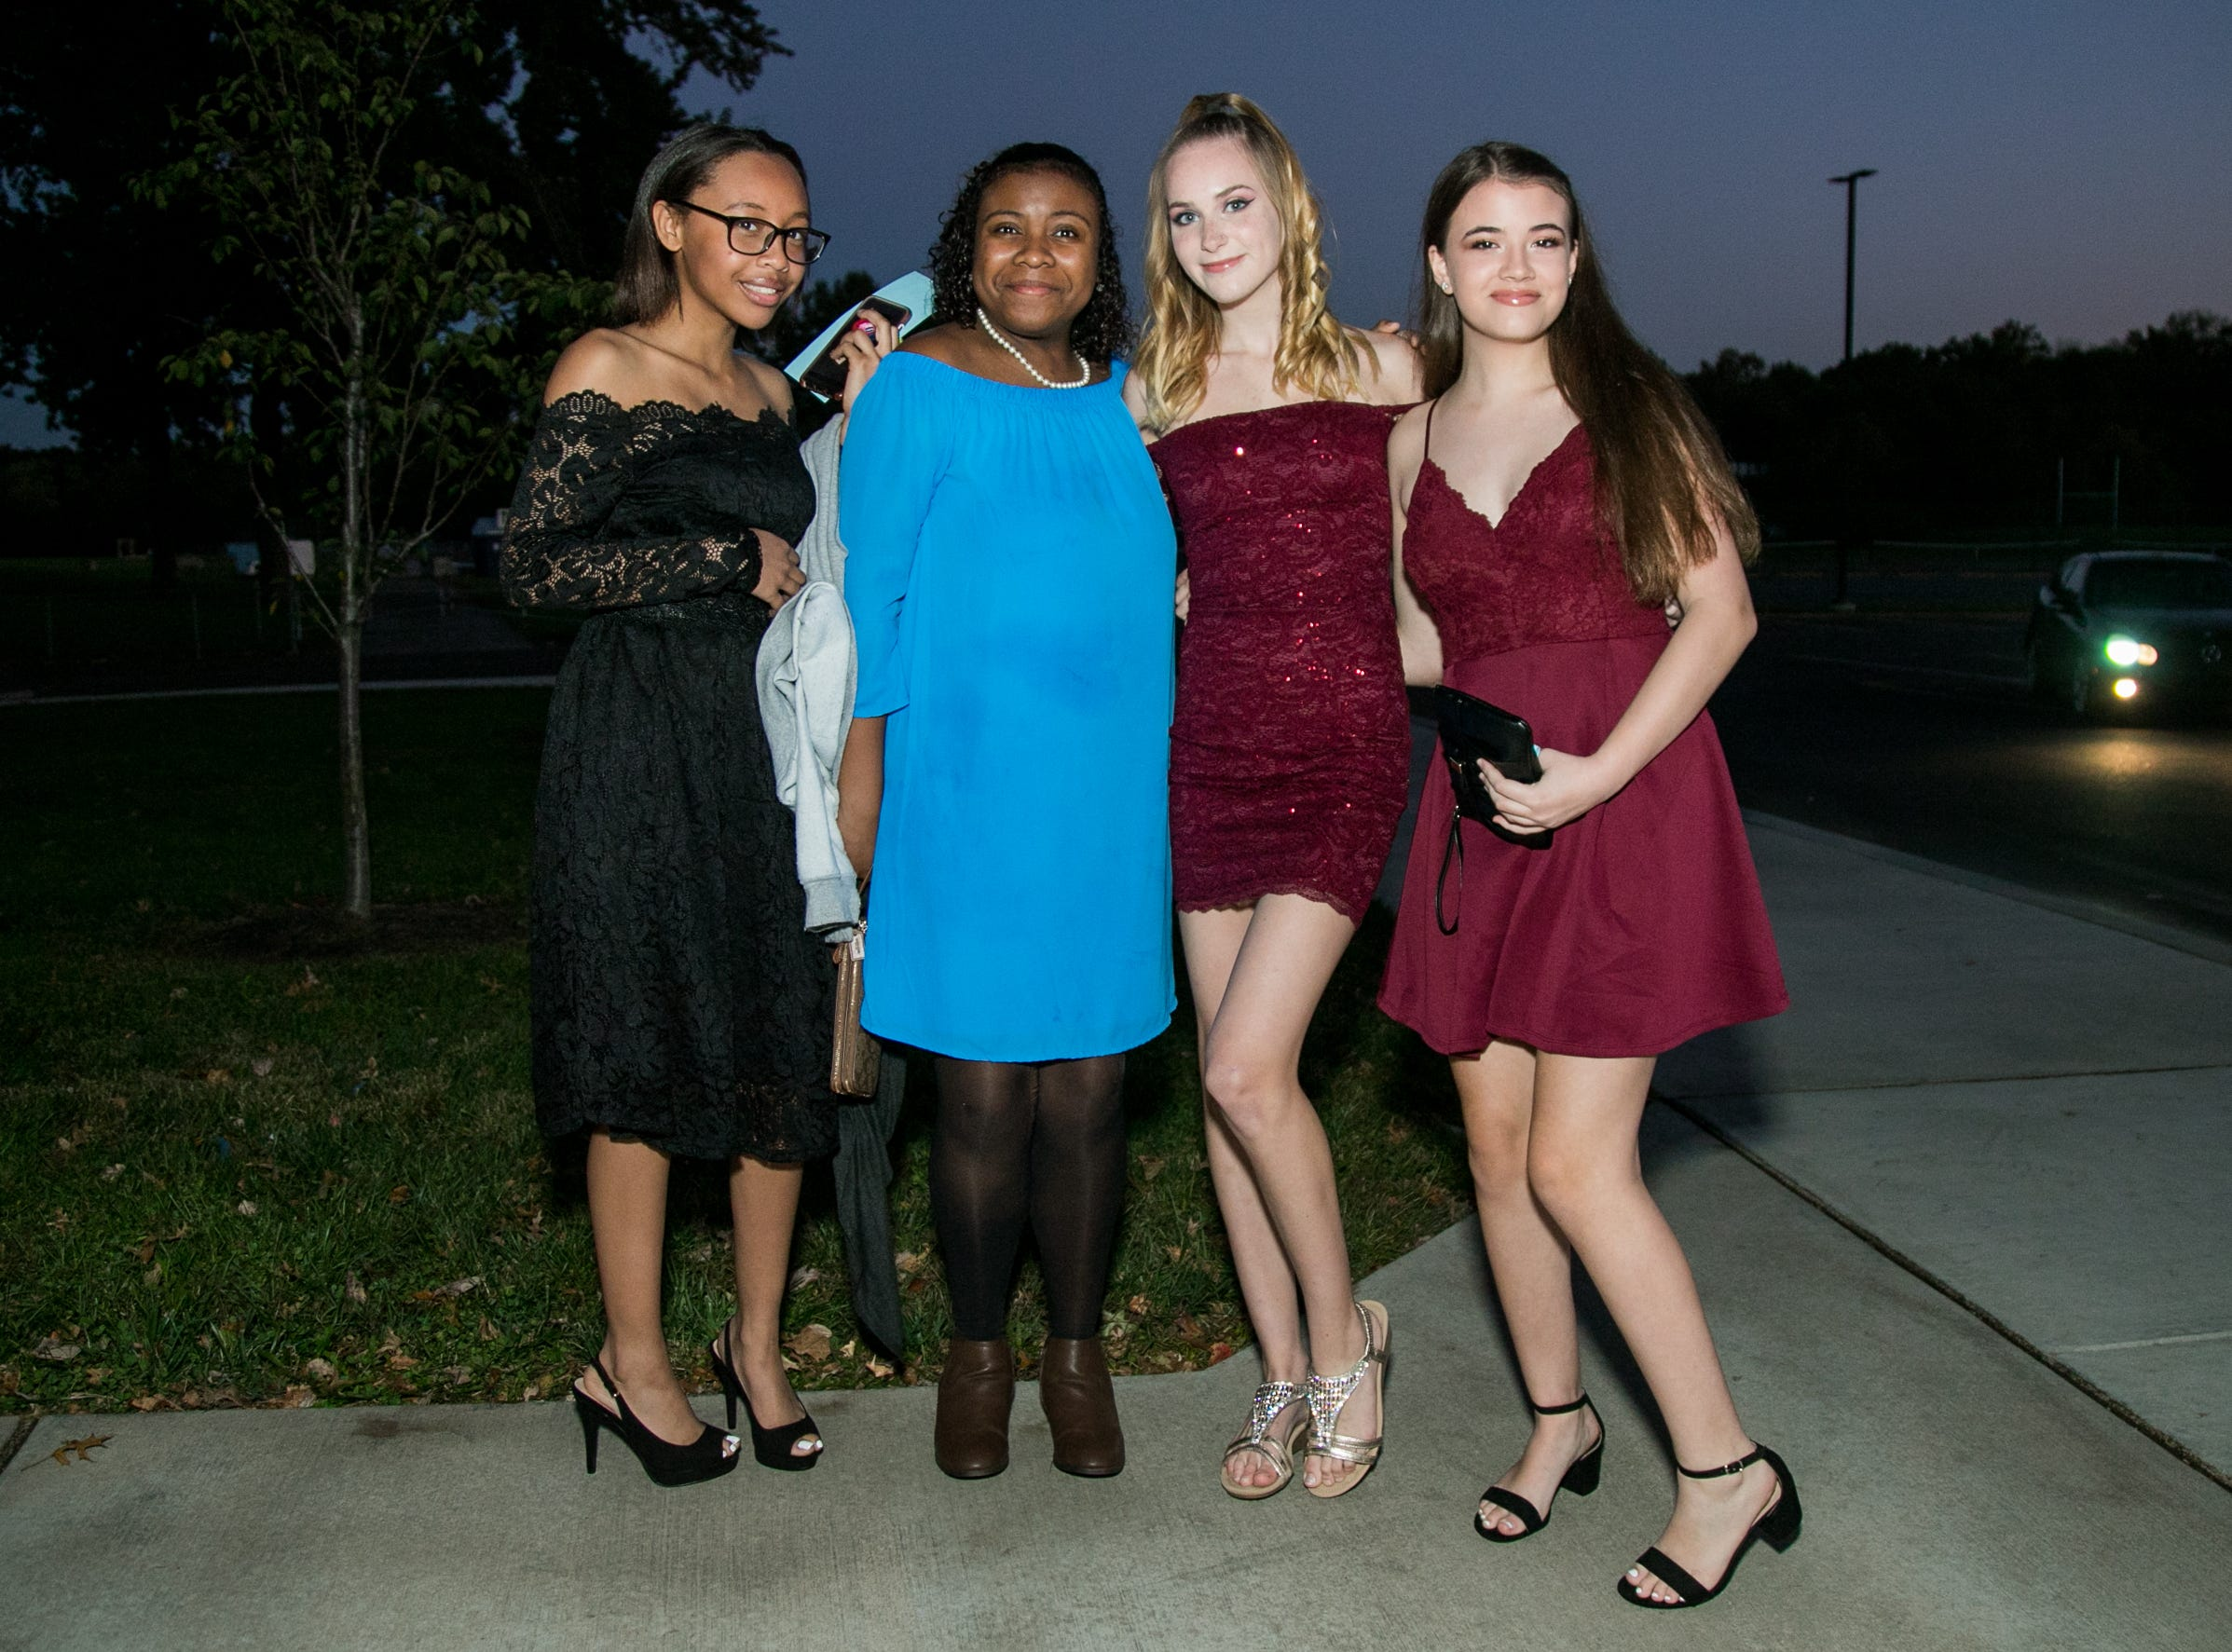 Students attend the Brandywine High School homecoming dance Saturday, Oct. 20, 2018 at the school.